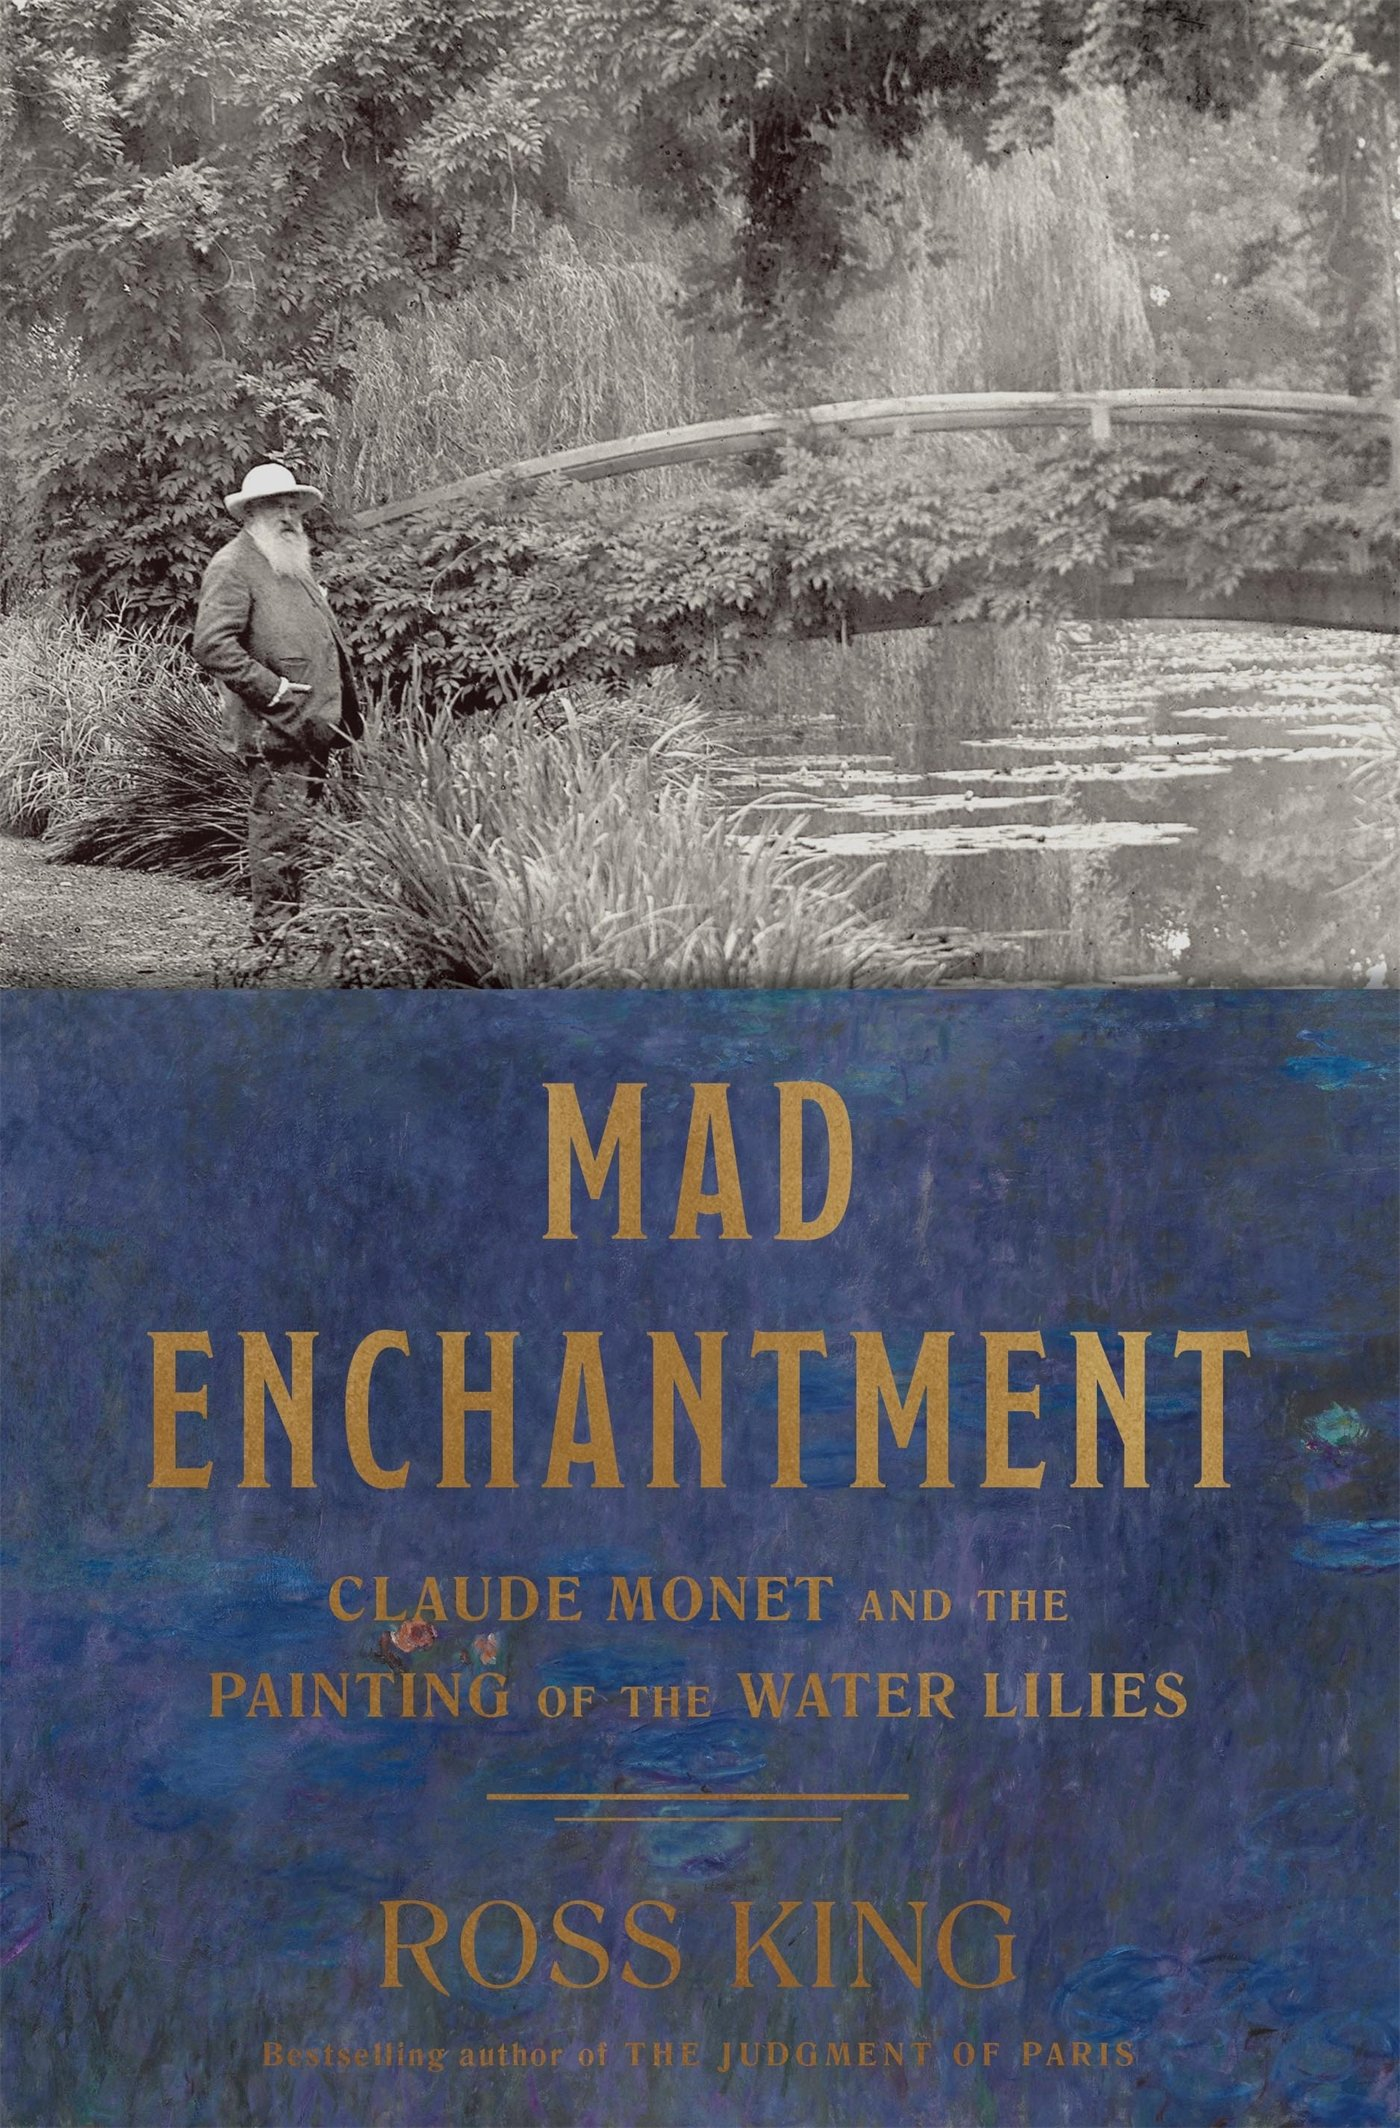 mad enchantment claude monet and the painting of the water lilies ross king 9781632860125 amazoncom books